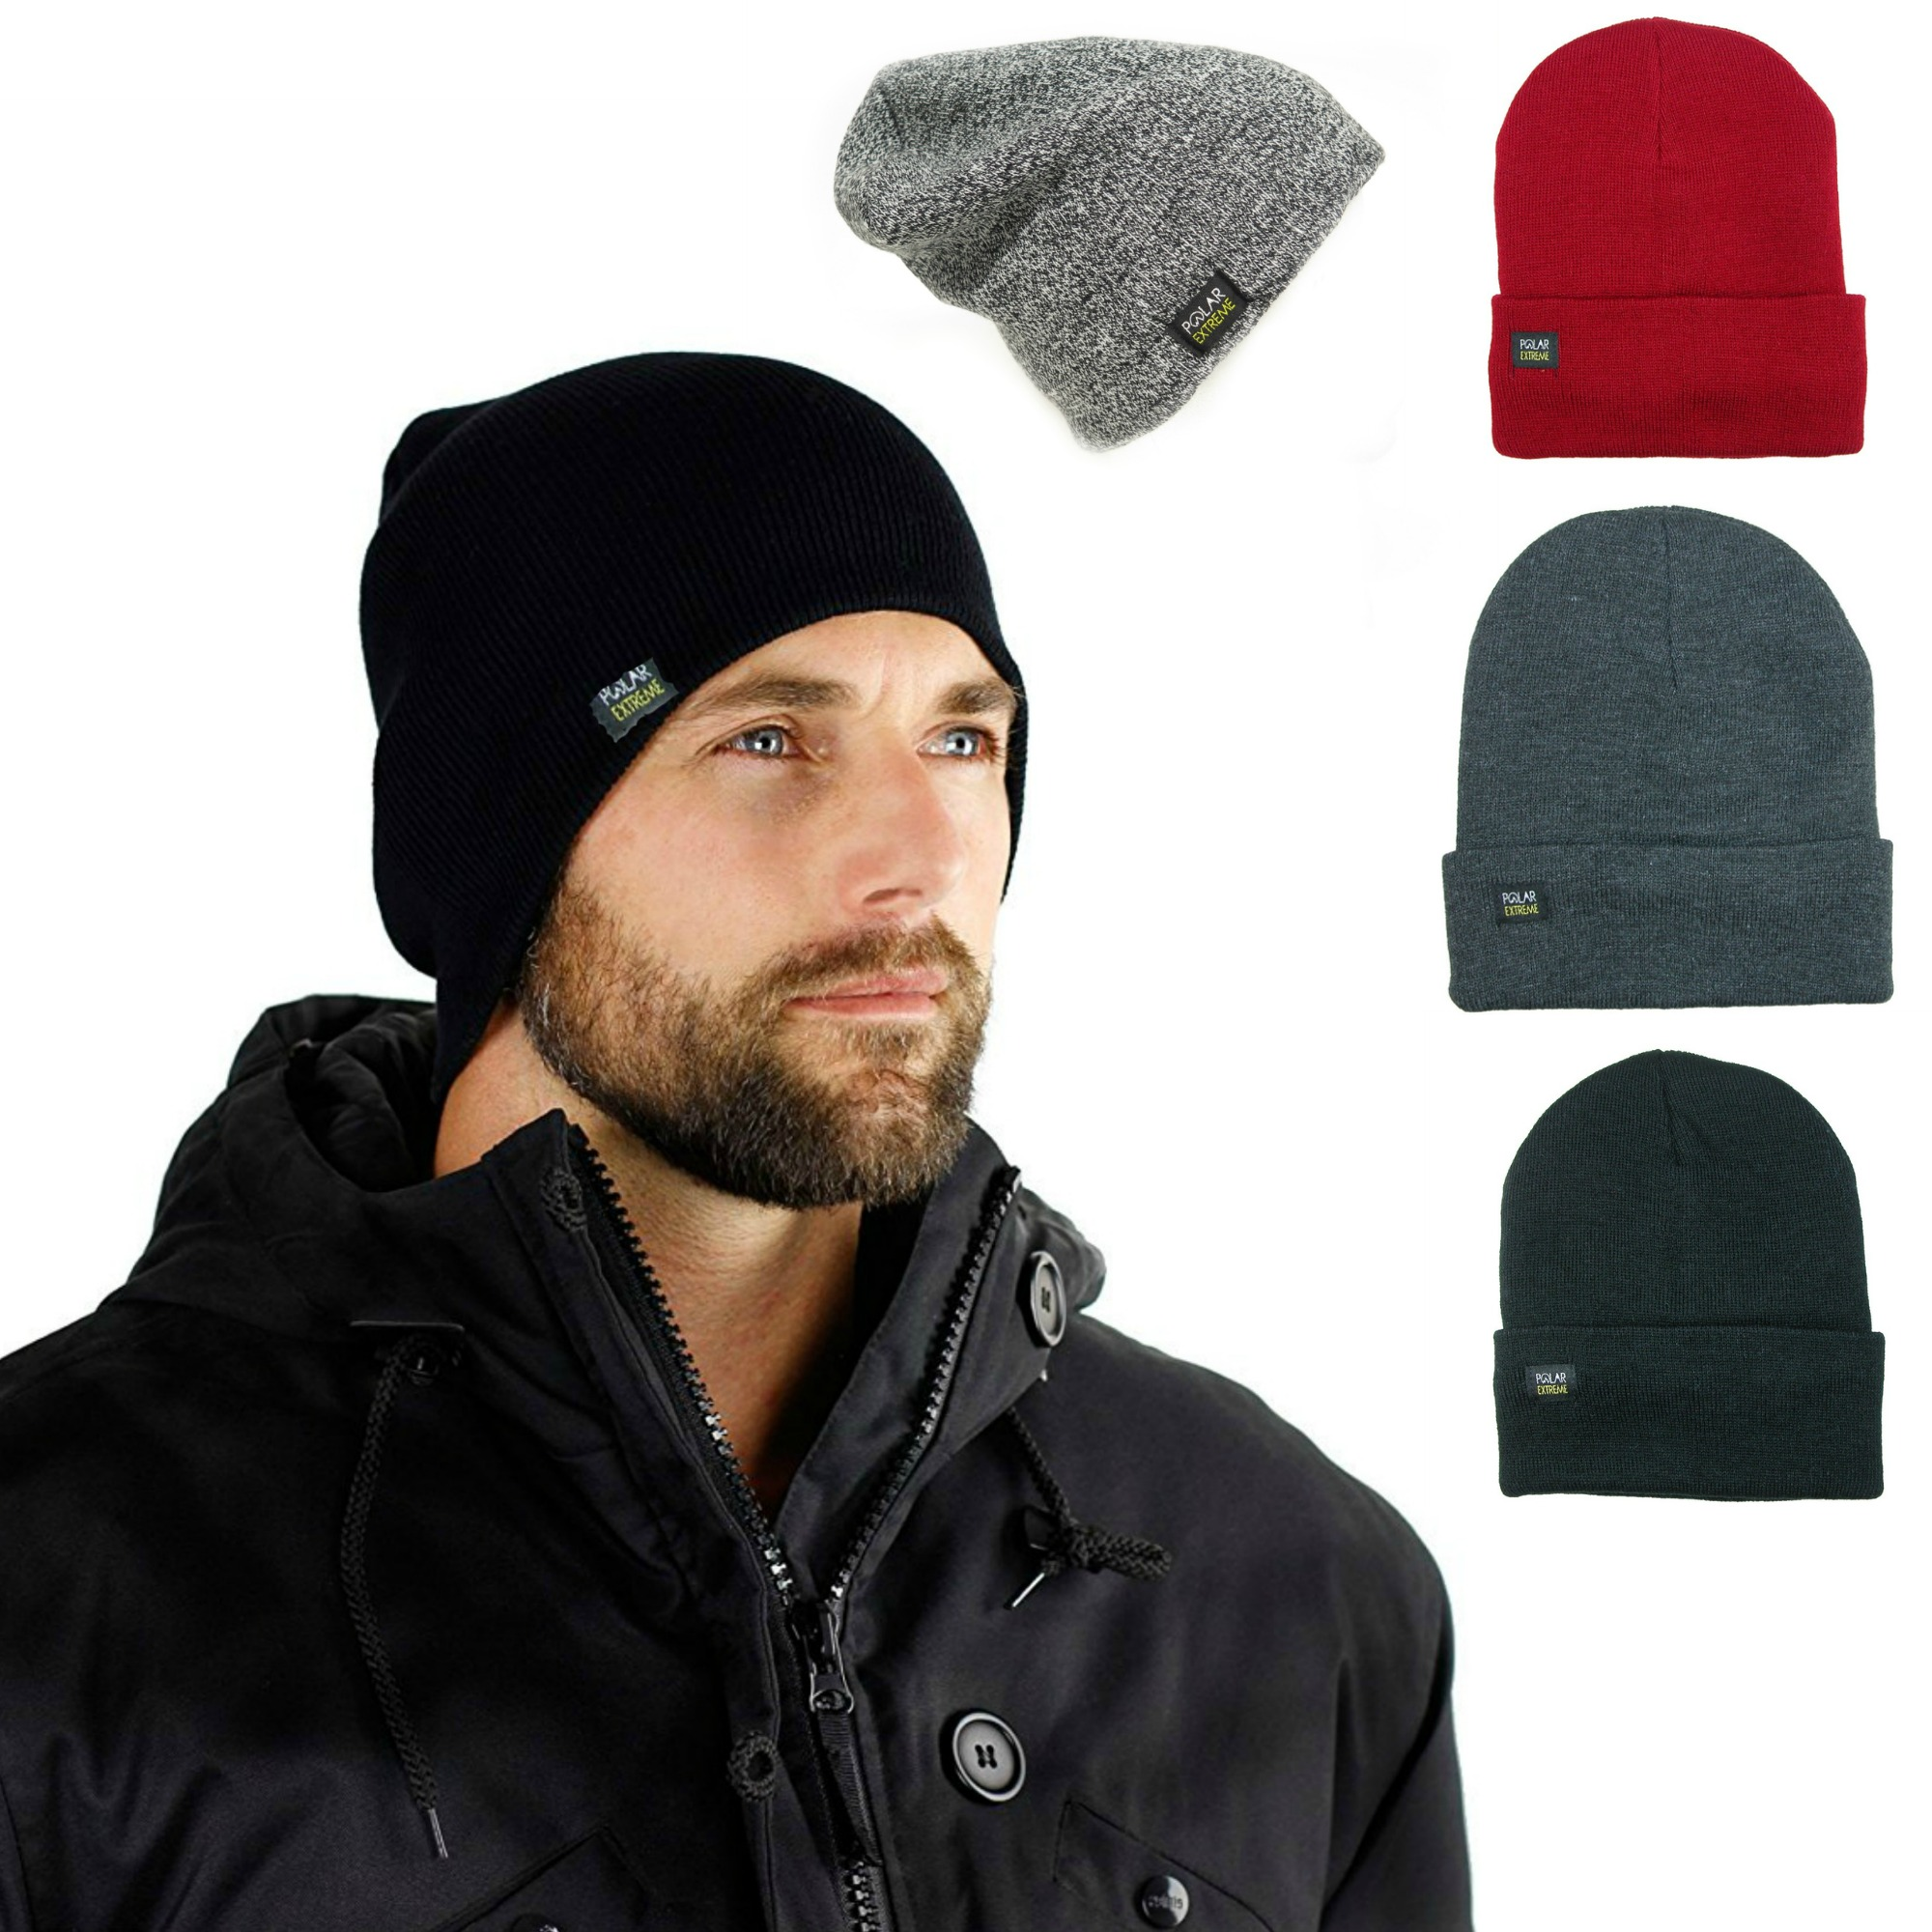 d95fc21c819 Magg - Mens Insulated Thermal Fleece Lined Comfort Daily Soft Beanies  Winter Hats (Gray Beanie) - Walmart.com